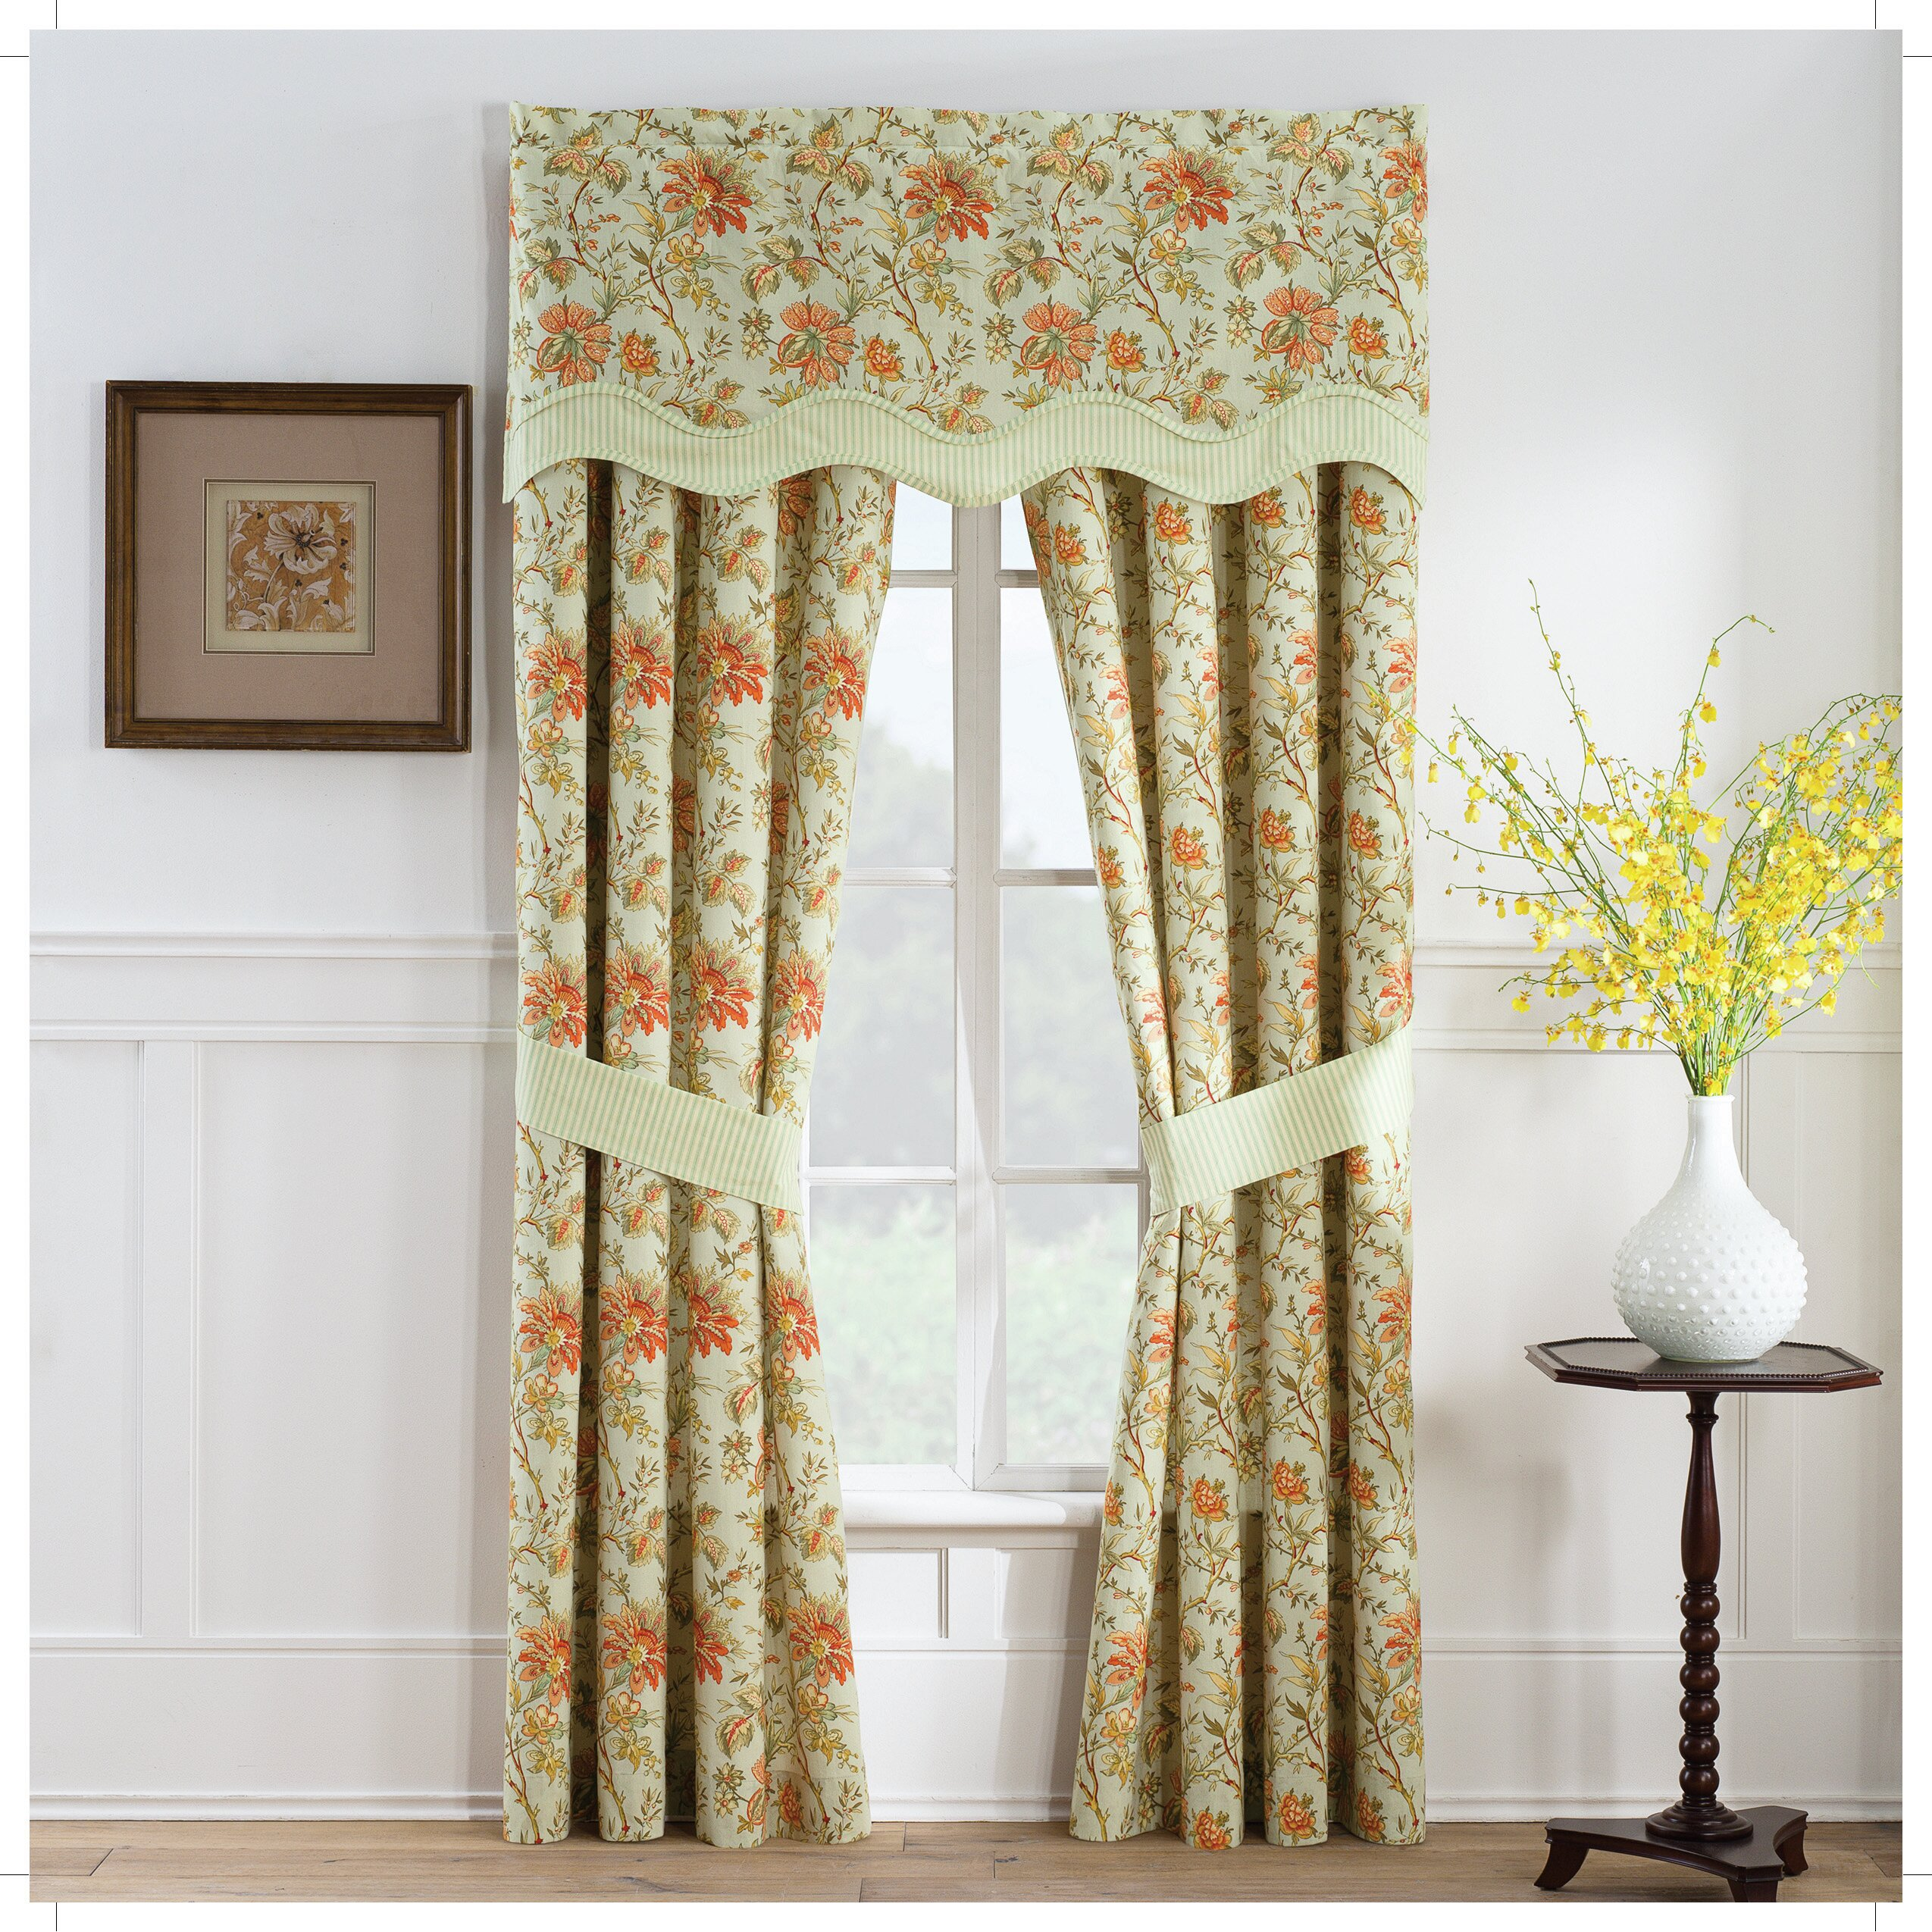 Persimmon Wave Window Curtain Valance